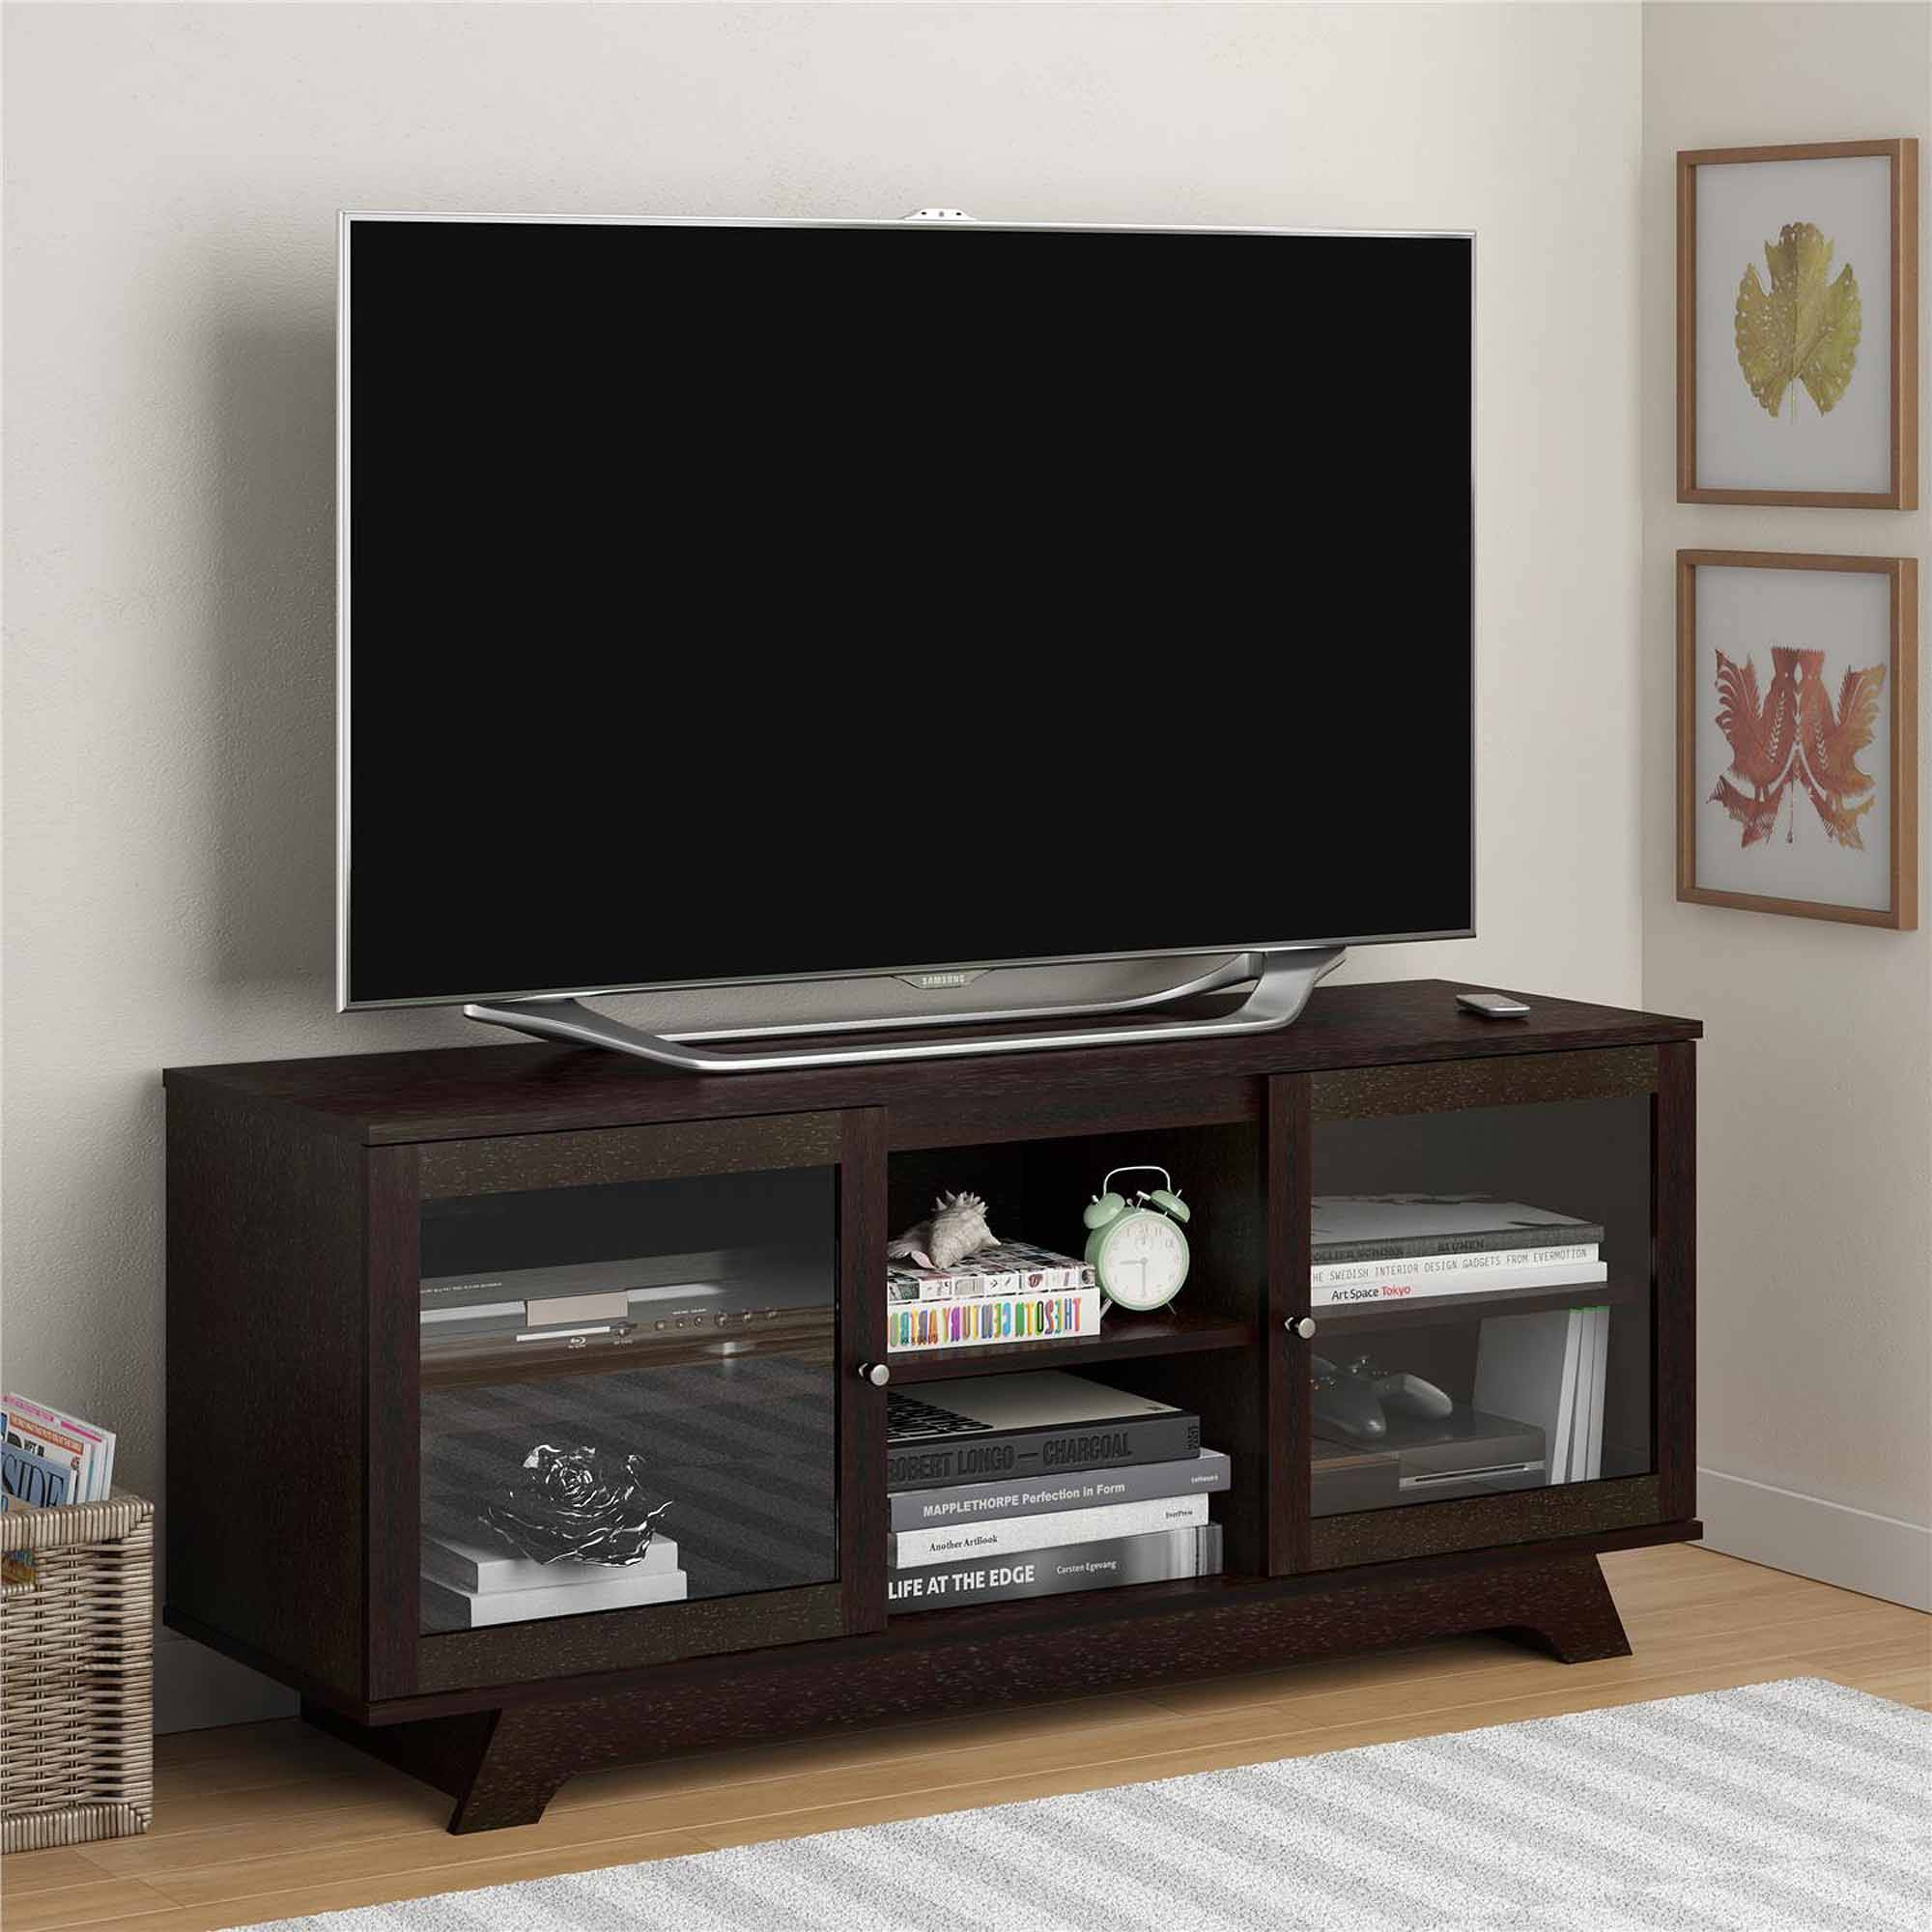 Sauder Harvest Mill Panel Tv Stand - Abbey Oak - Walmart pertaining to Como Tv Stands (Image 10 of 15)